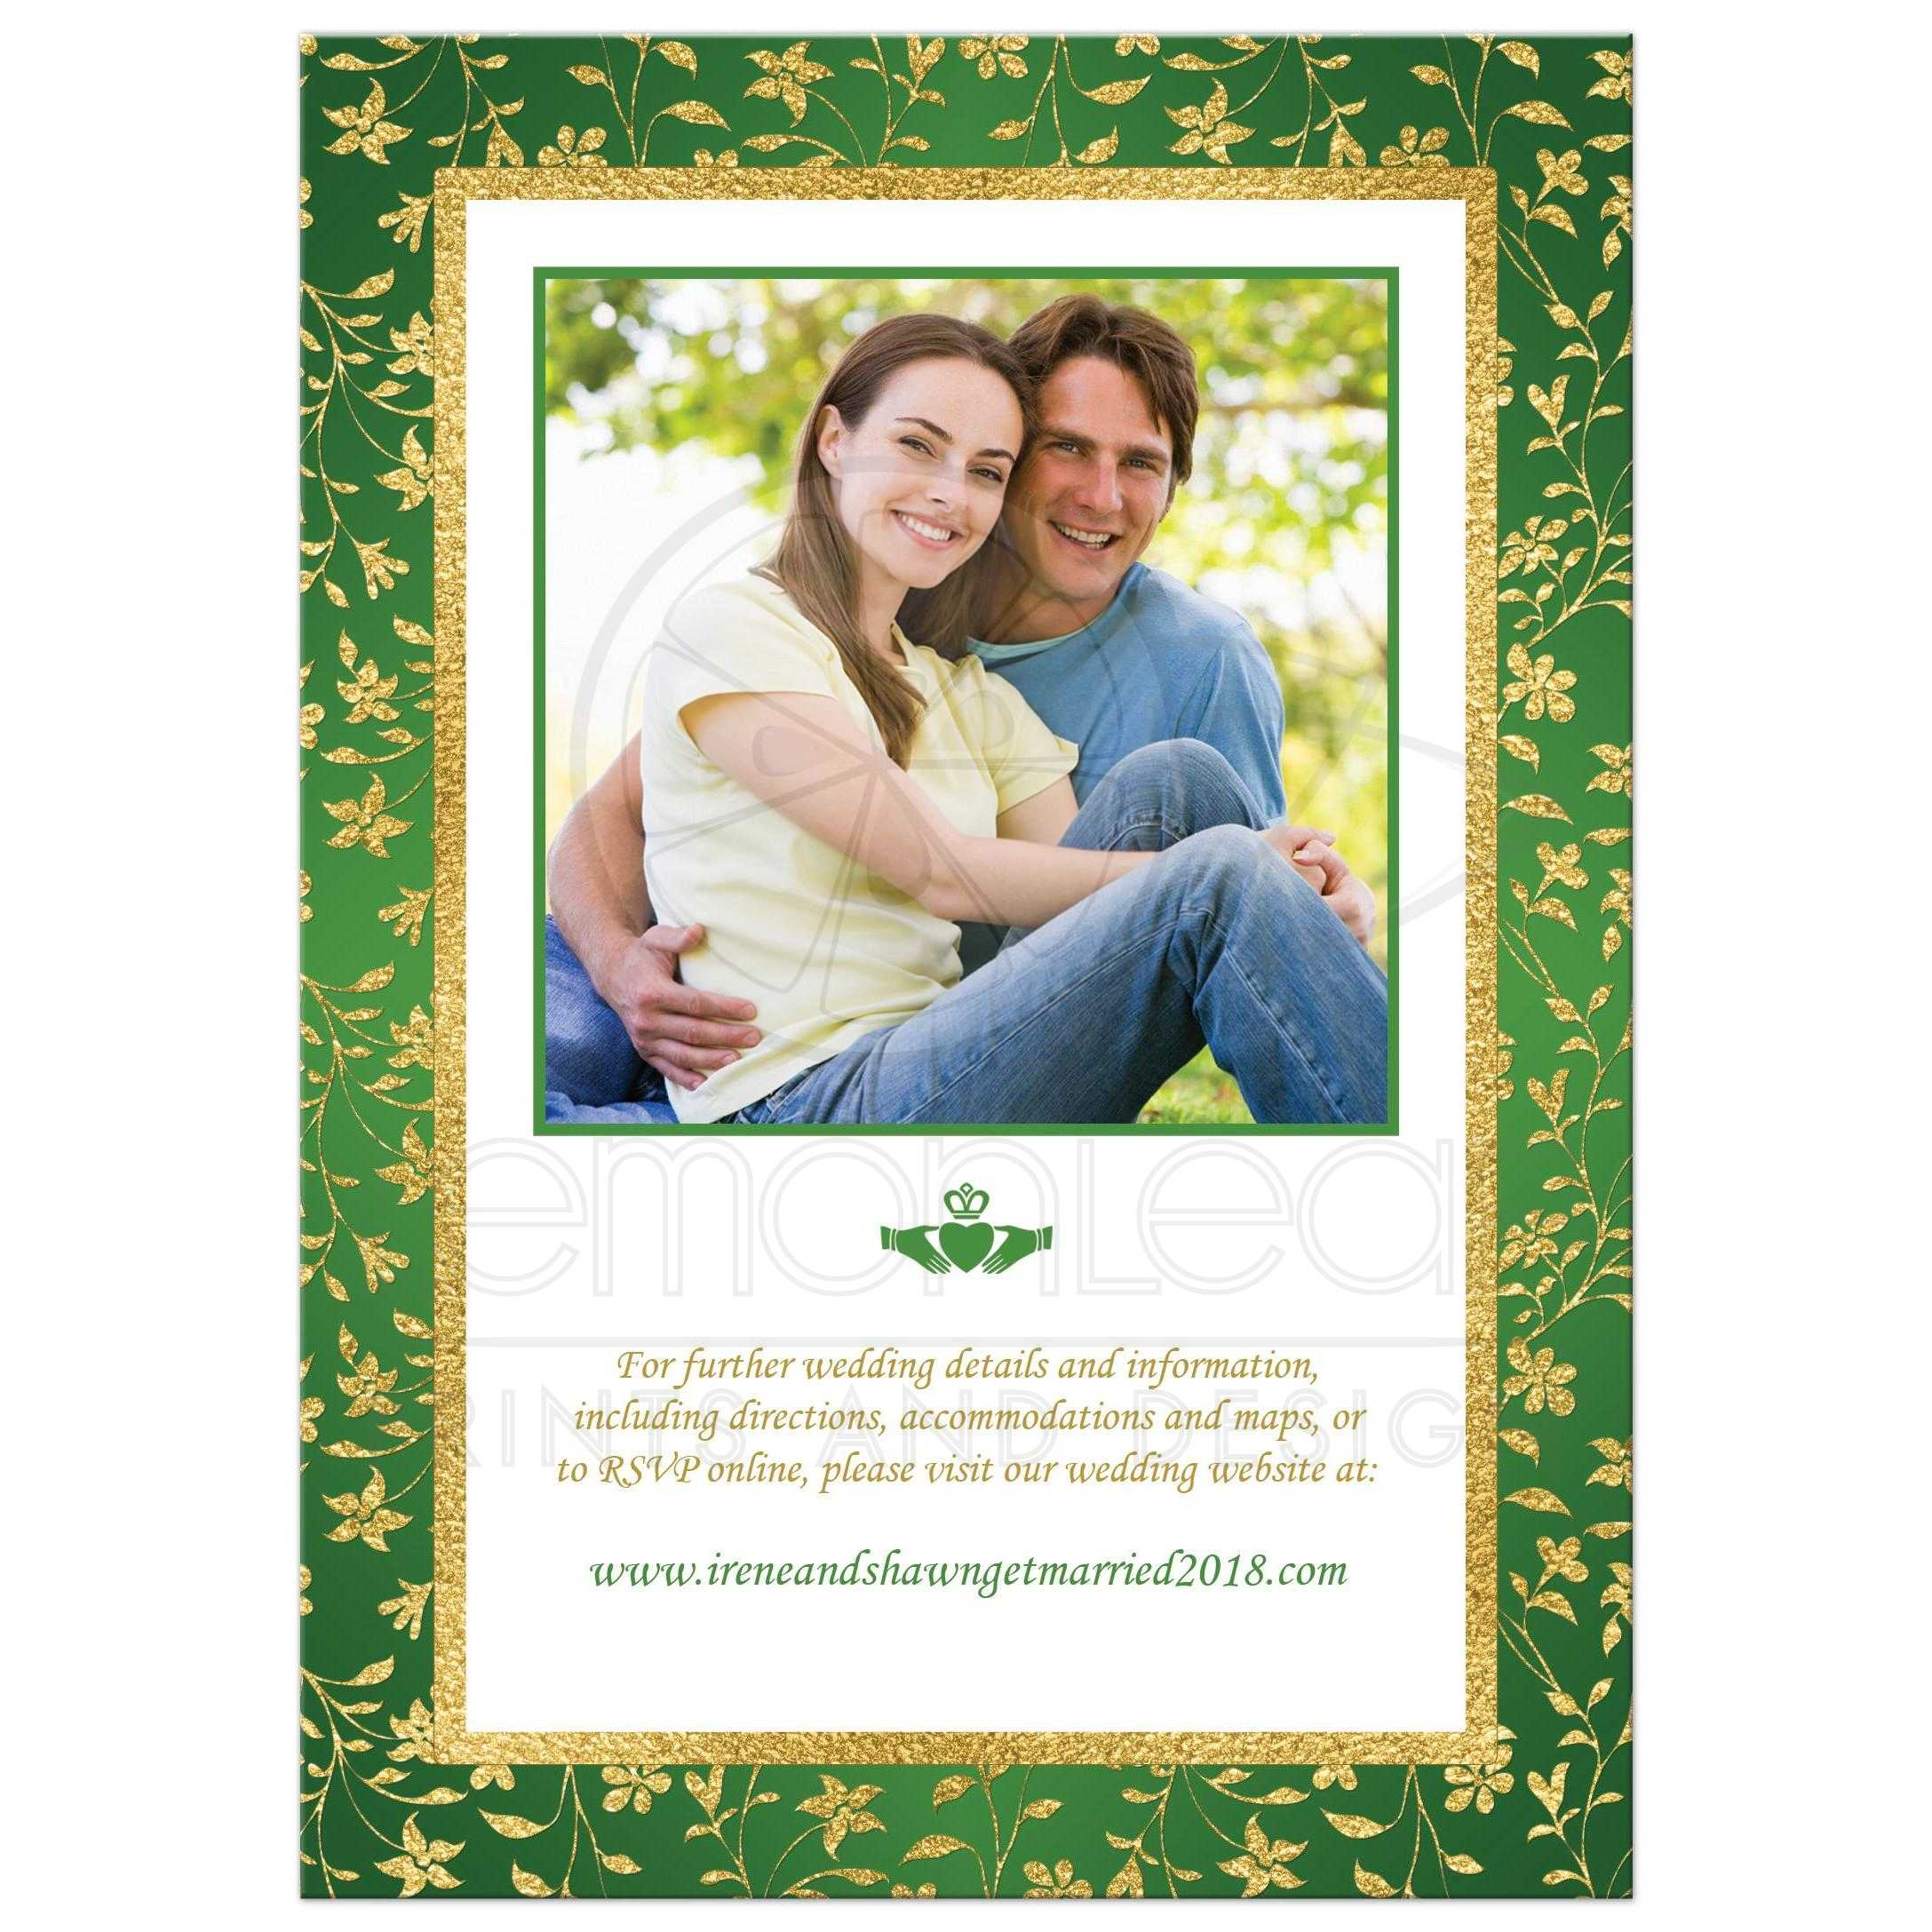 PHOTO Optional Wedding Invitation - Green, Gold, White Floral ...